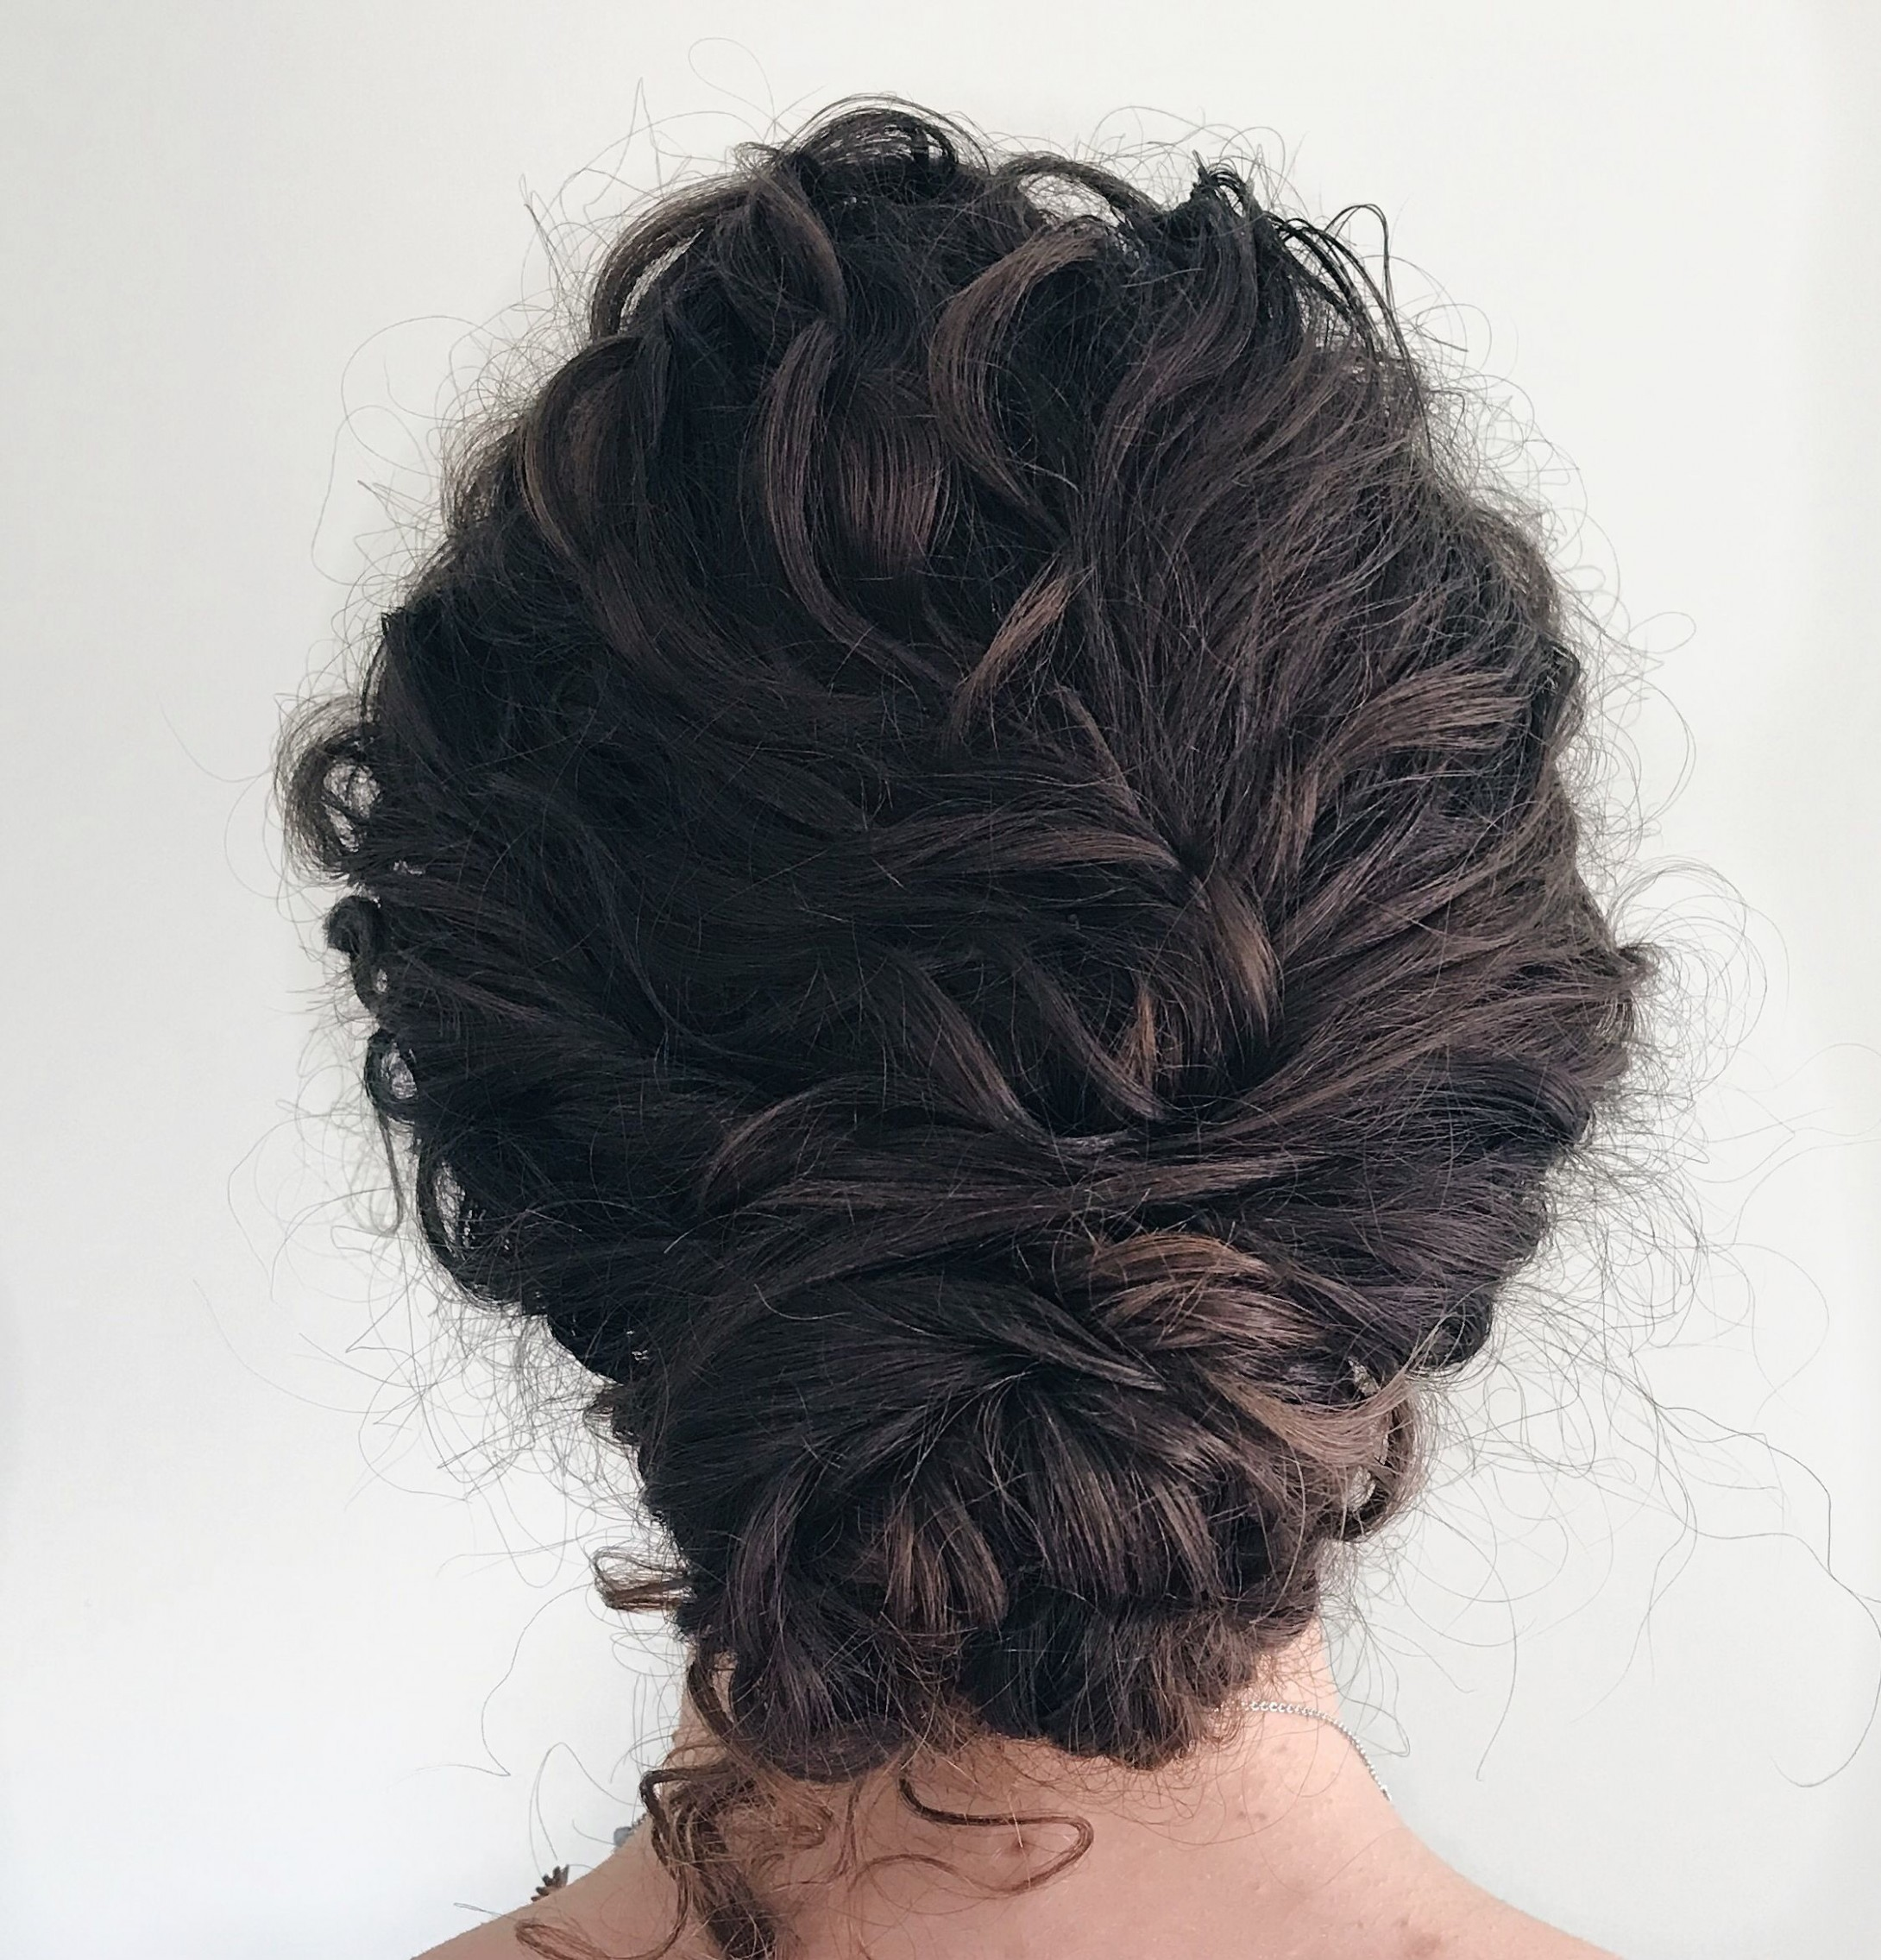 Naturally Curly Low Bun Curly Hair Up, Curly Hair Styles Low Curly Bun